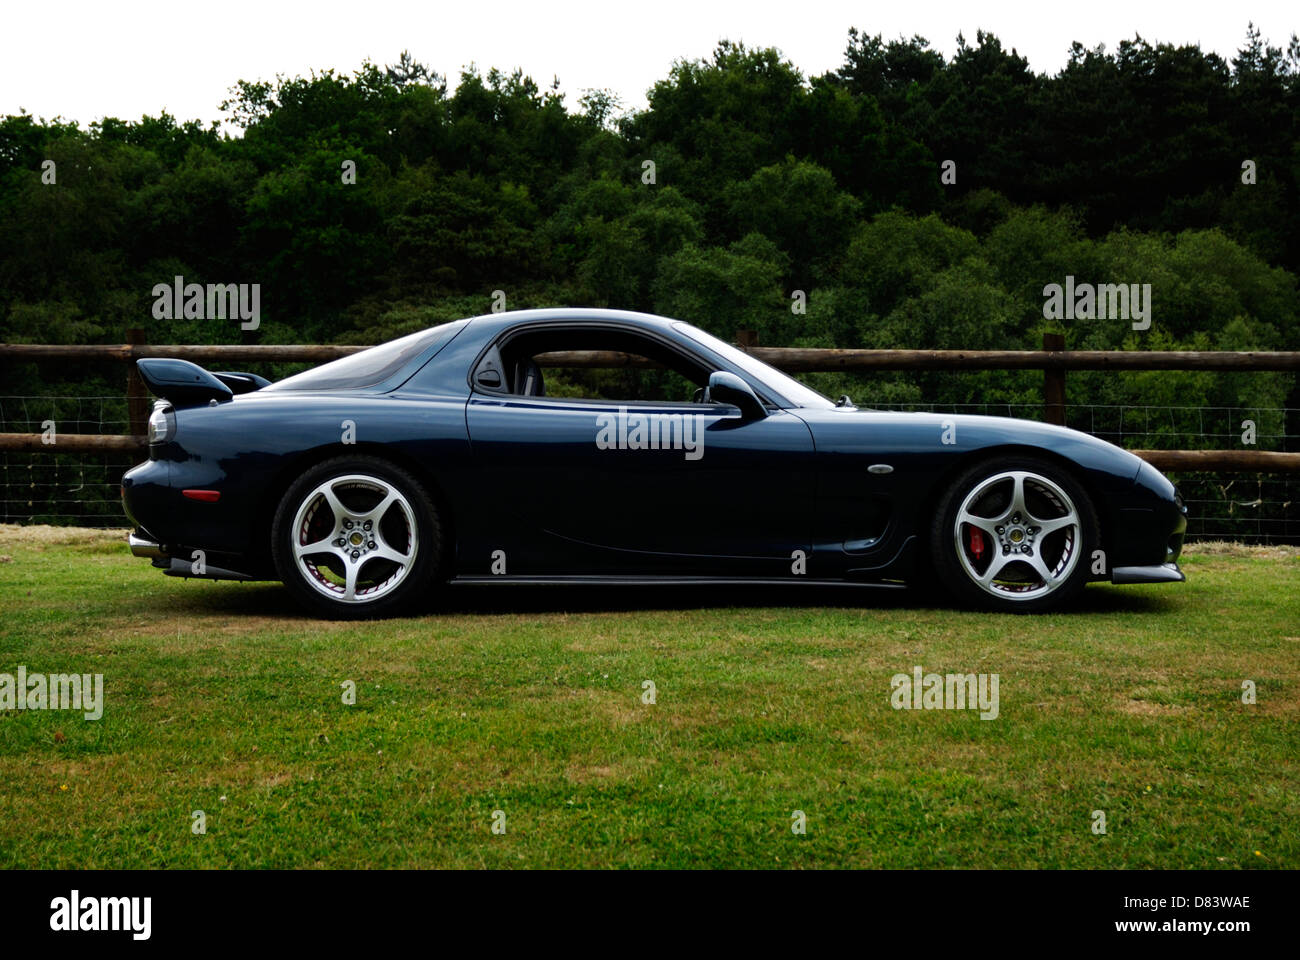 Mazda FD RX 7 Sports Car, Playboyu0027s Car Of The Year For 1993, 13B Wankel  Rotary Engine.